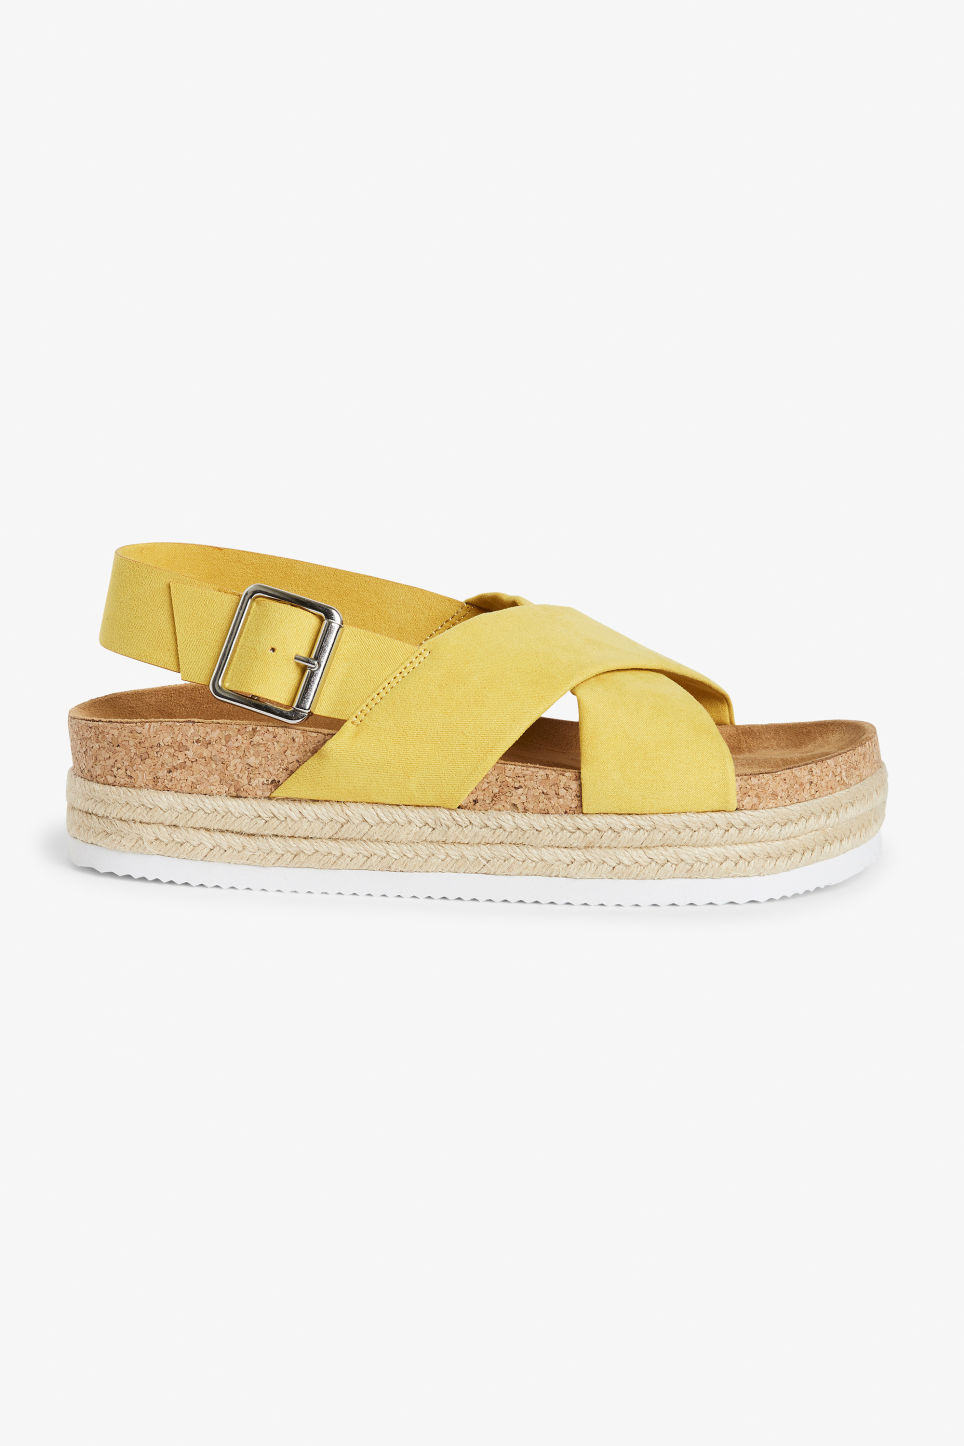 Detailed image of Monki  in yellow